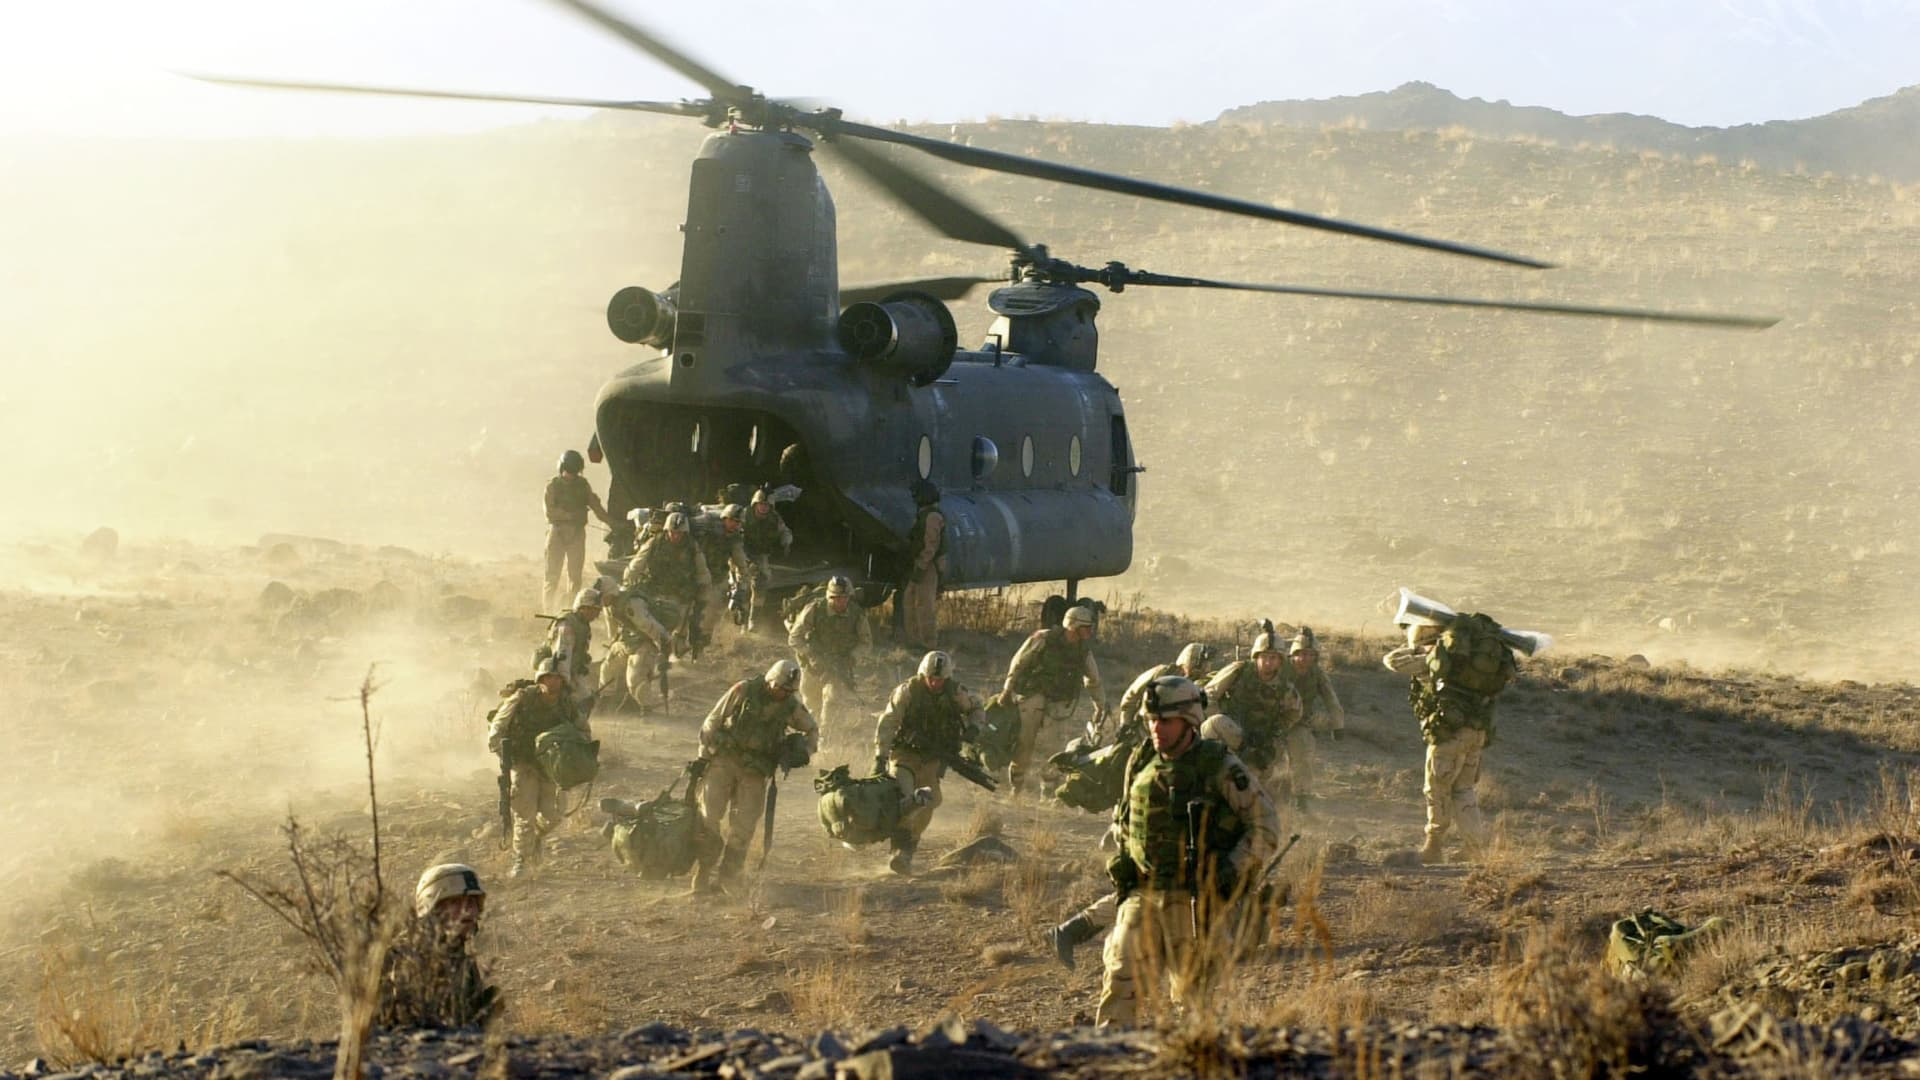 U.S. Army soldiers from the 101st Airborne division off load during a combat mission from a Chinook 47 helicopter March 5, 2002 in Eastern Afghanistan.